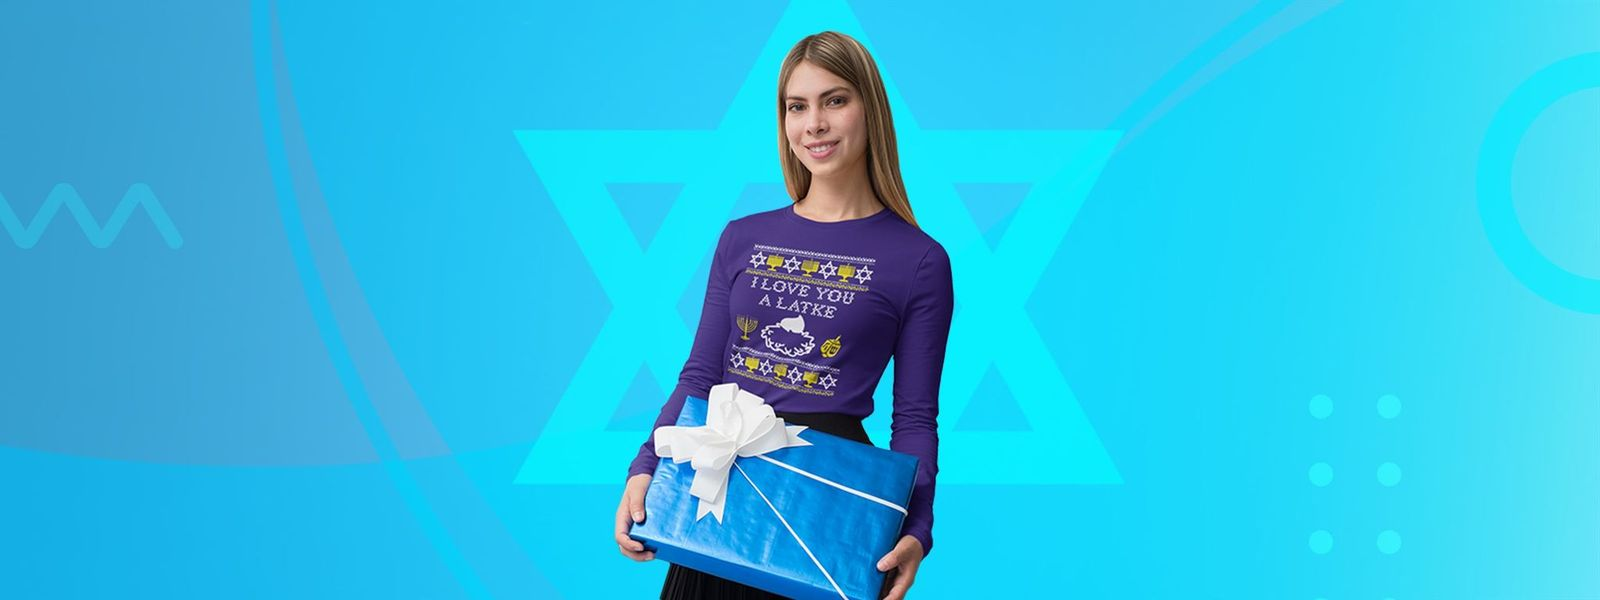 Best Hanukkah Gift Ideas for This Year's Celebration